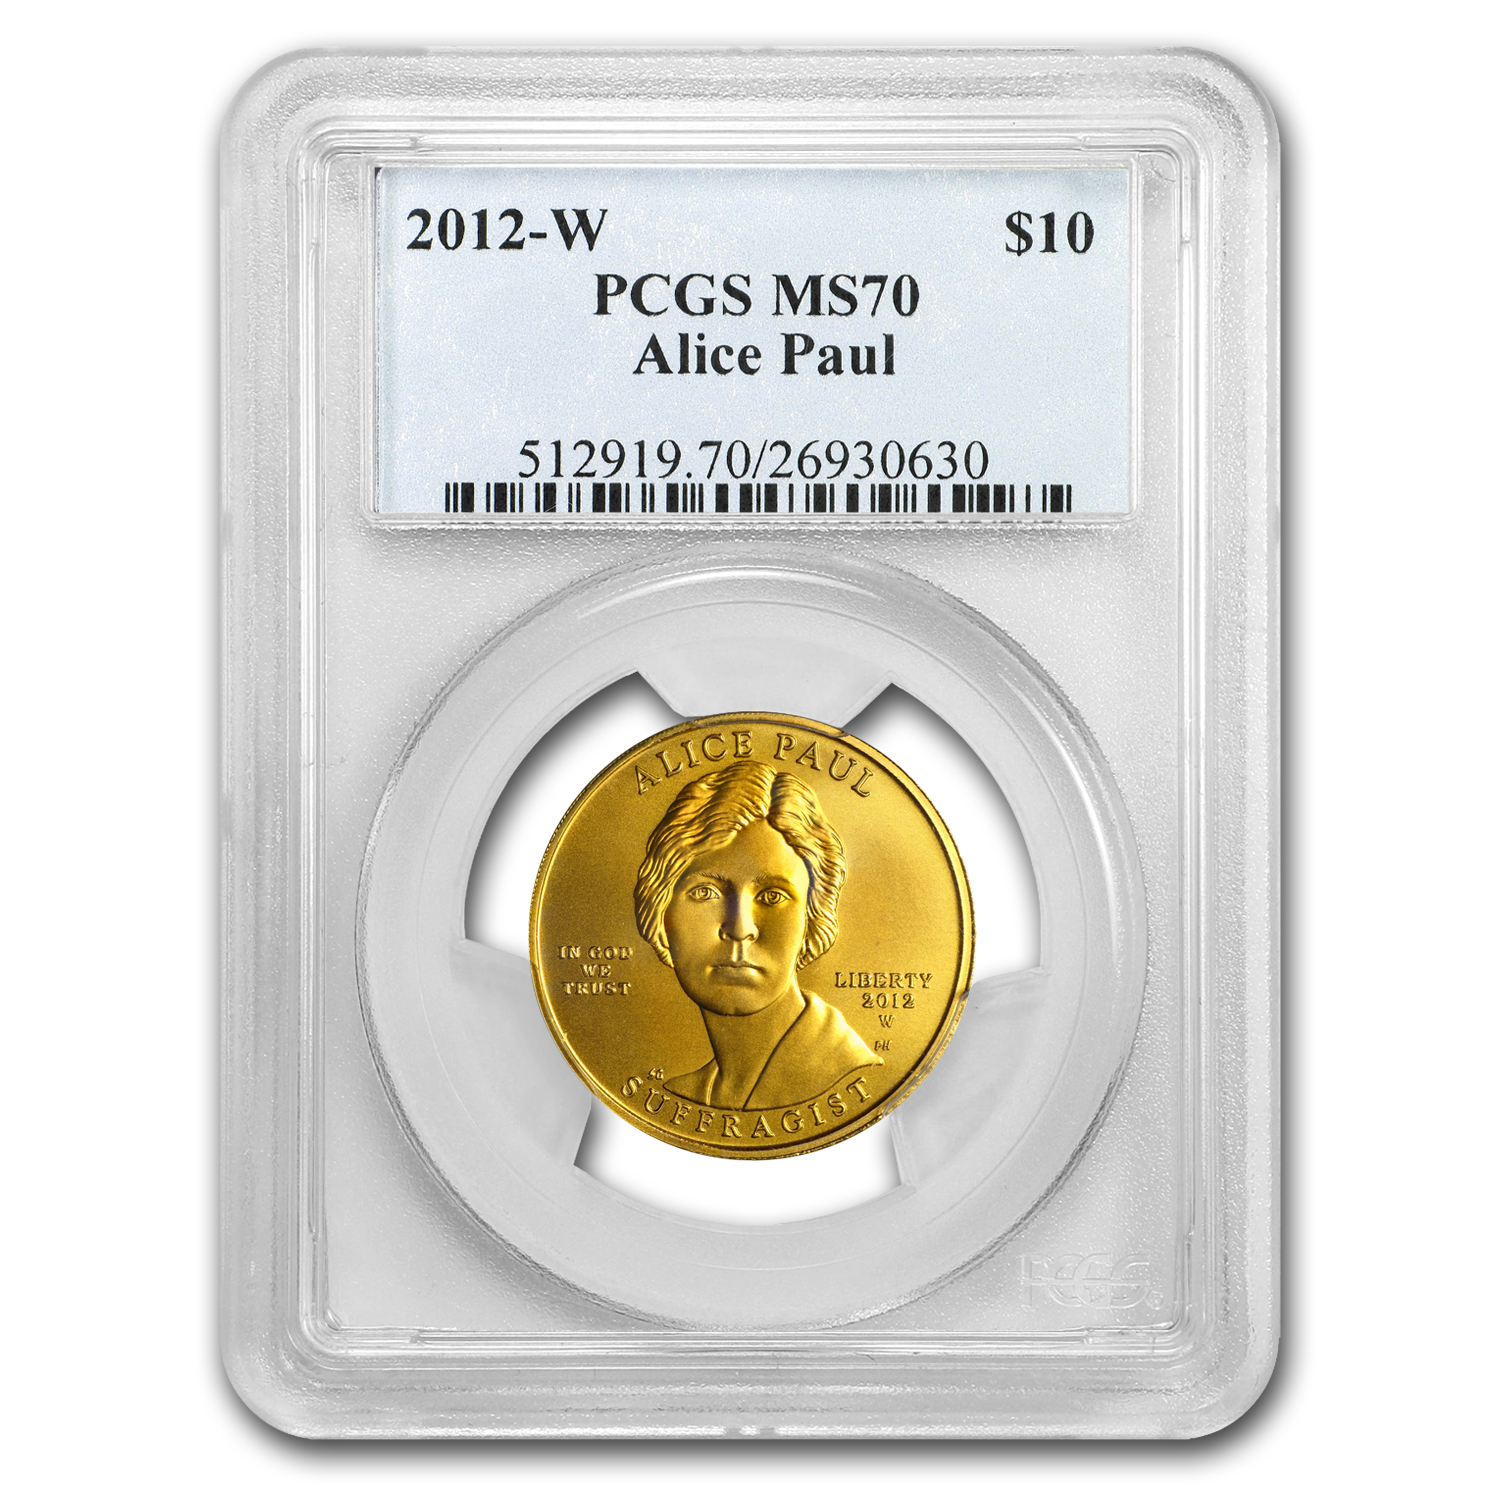 2012-W 1/2 oz Gold Alice Paul MS-70 PCGS